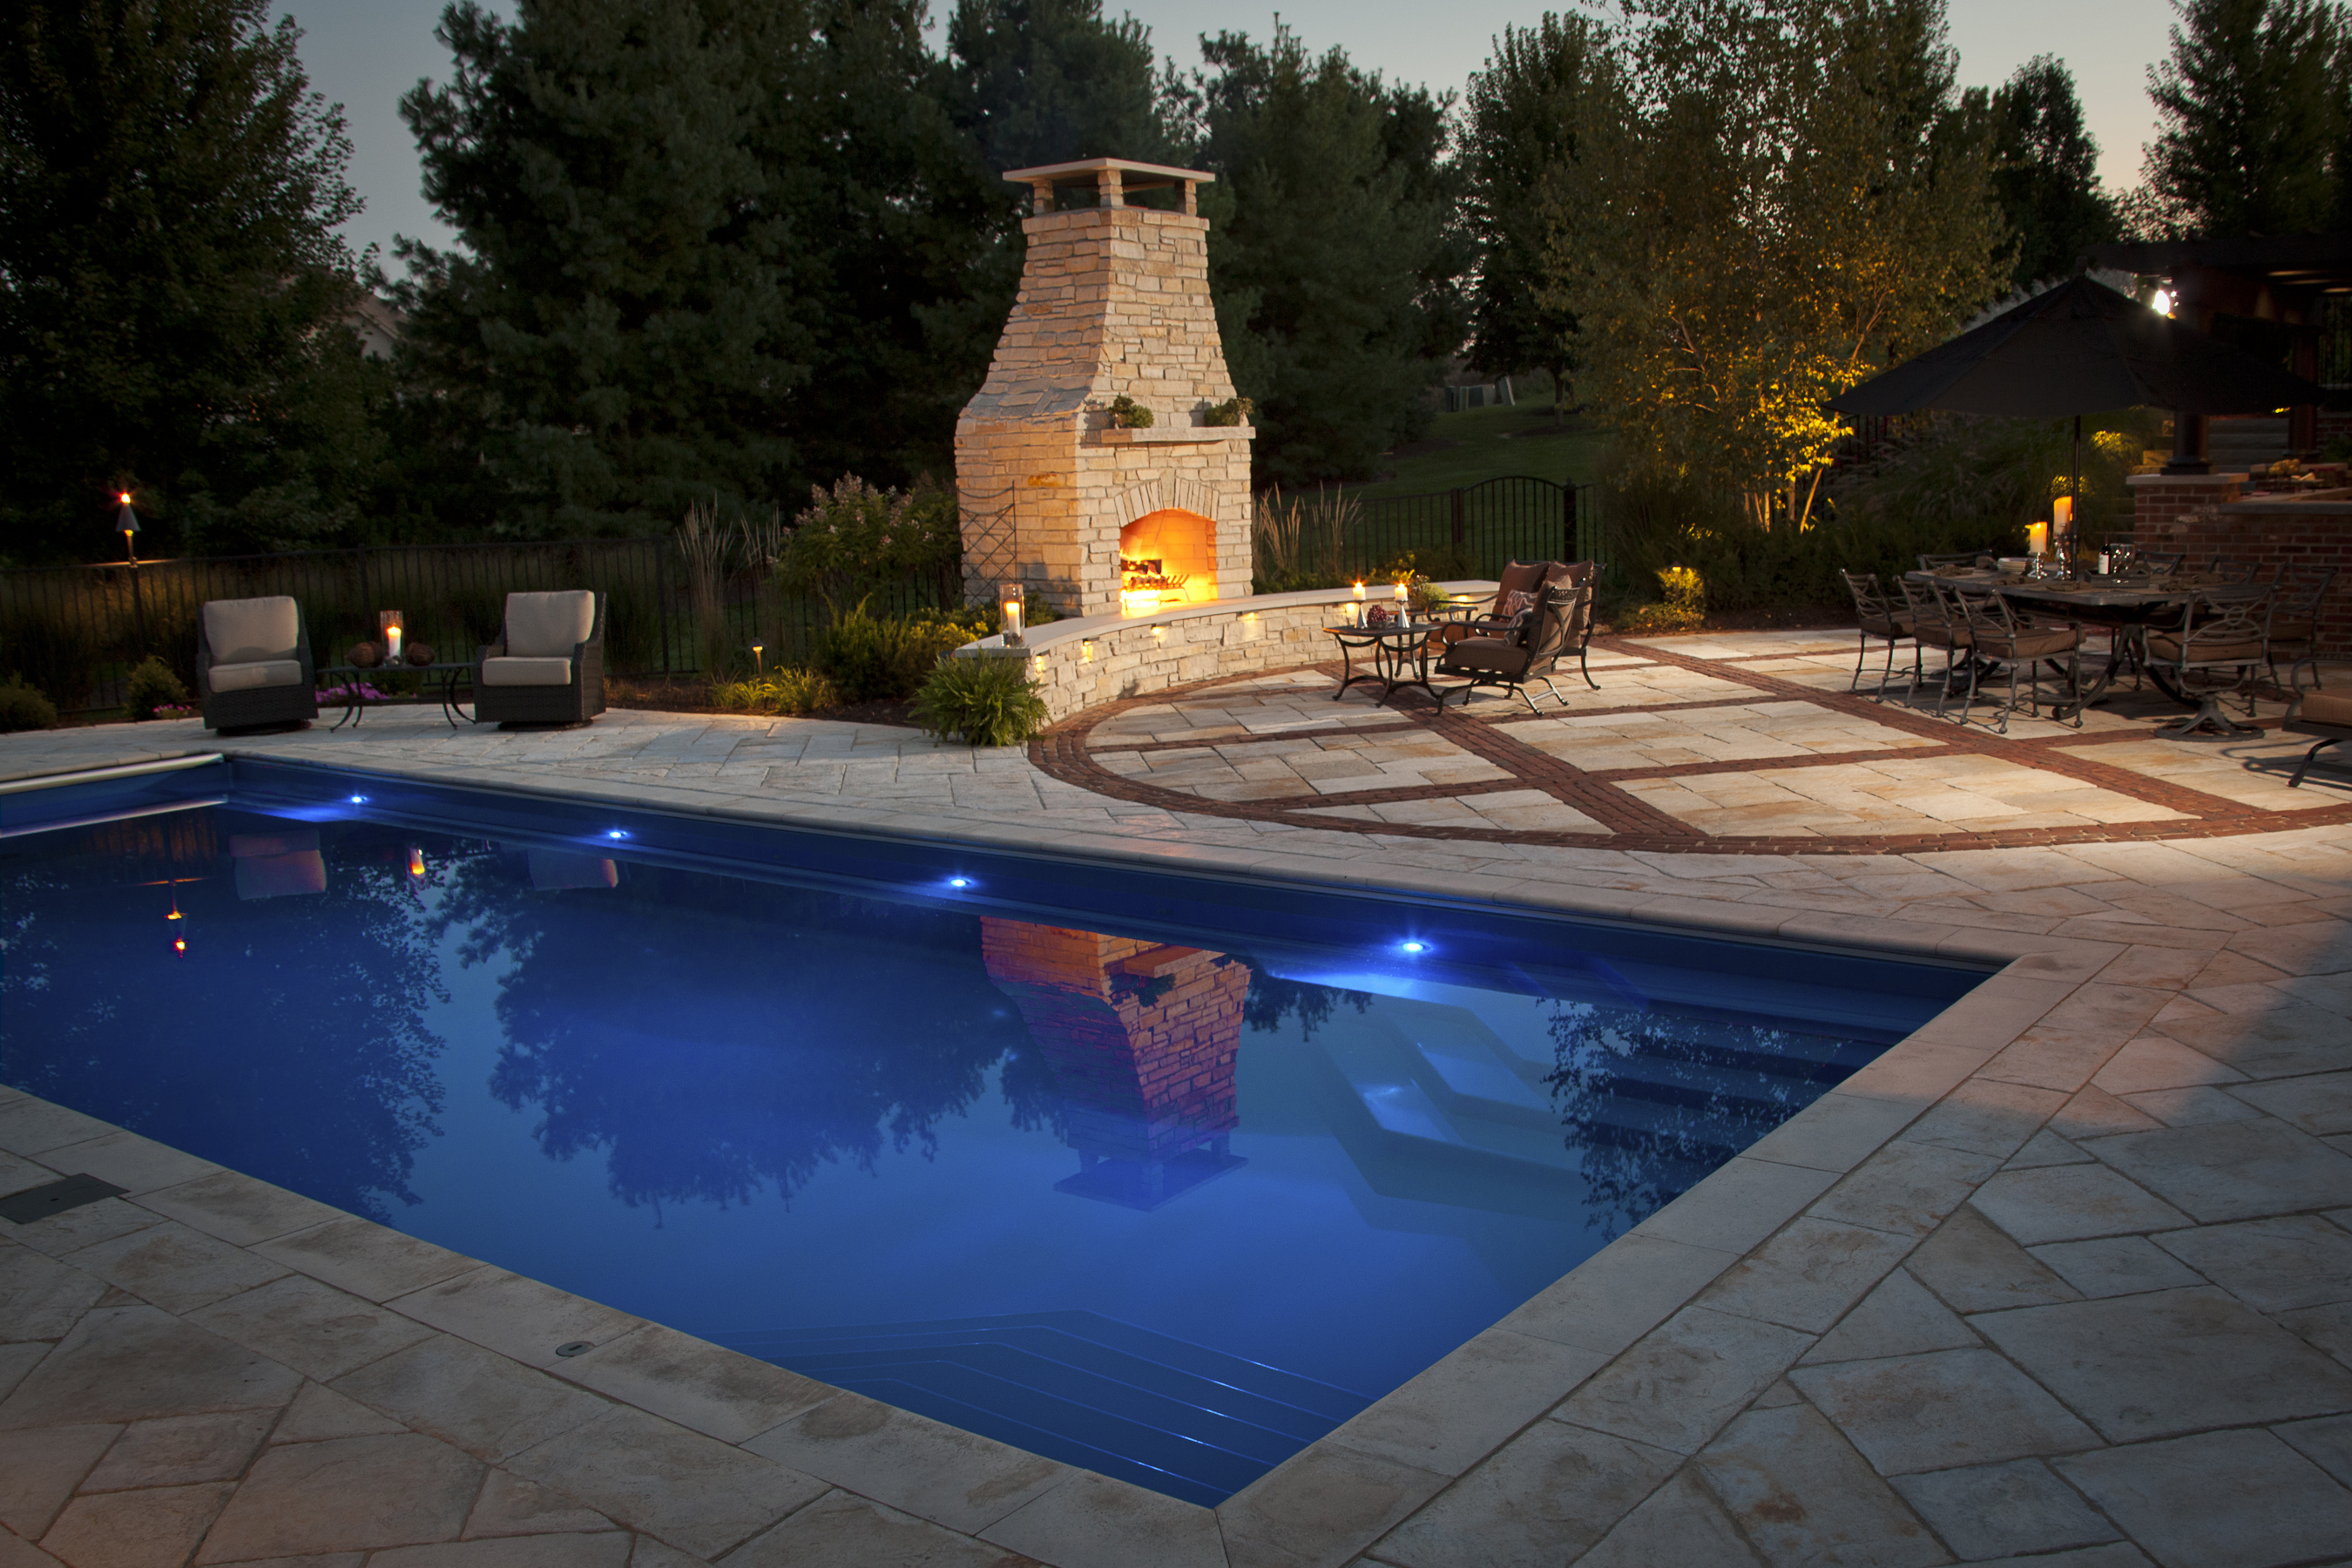 backyard oasis - new braunfels pool company